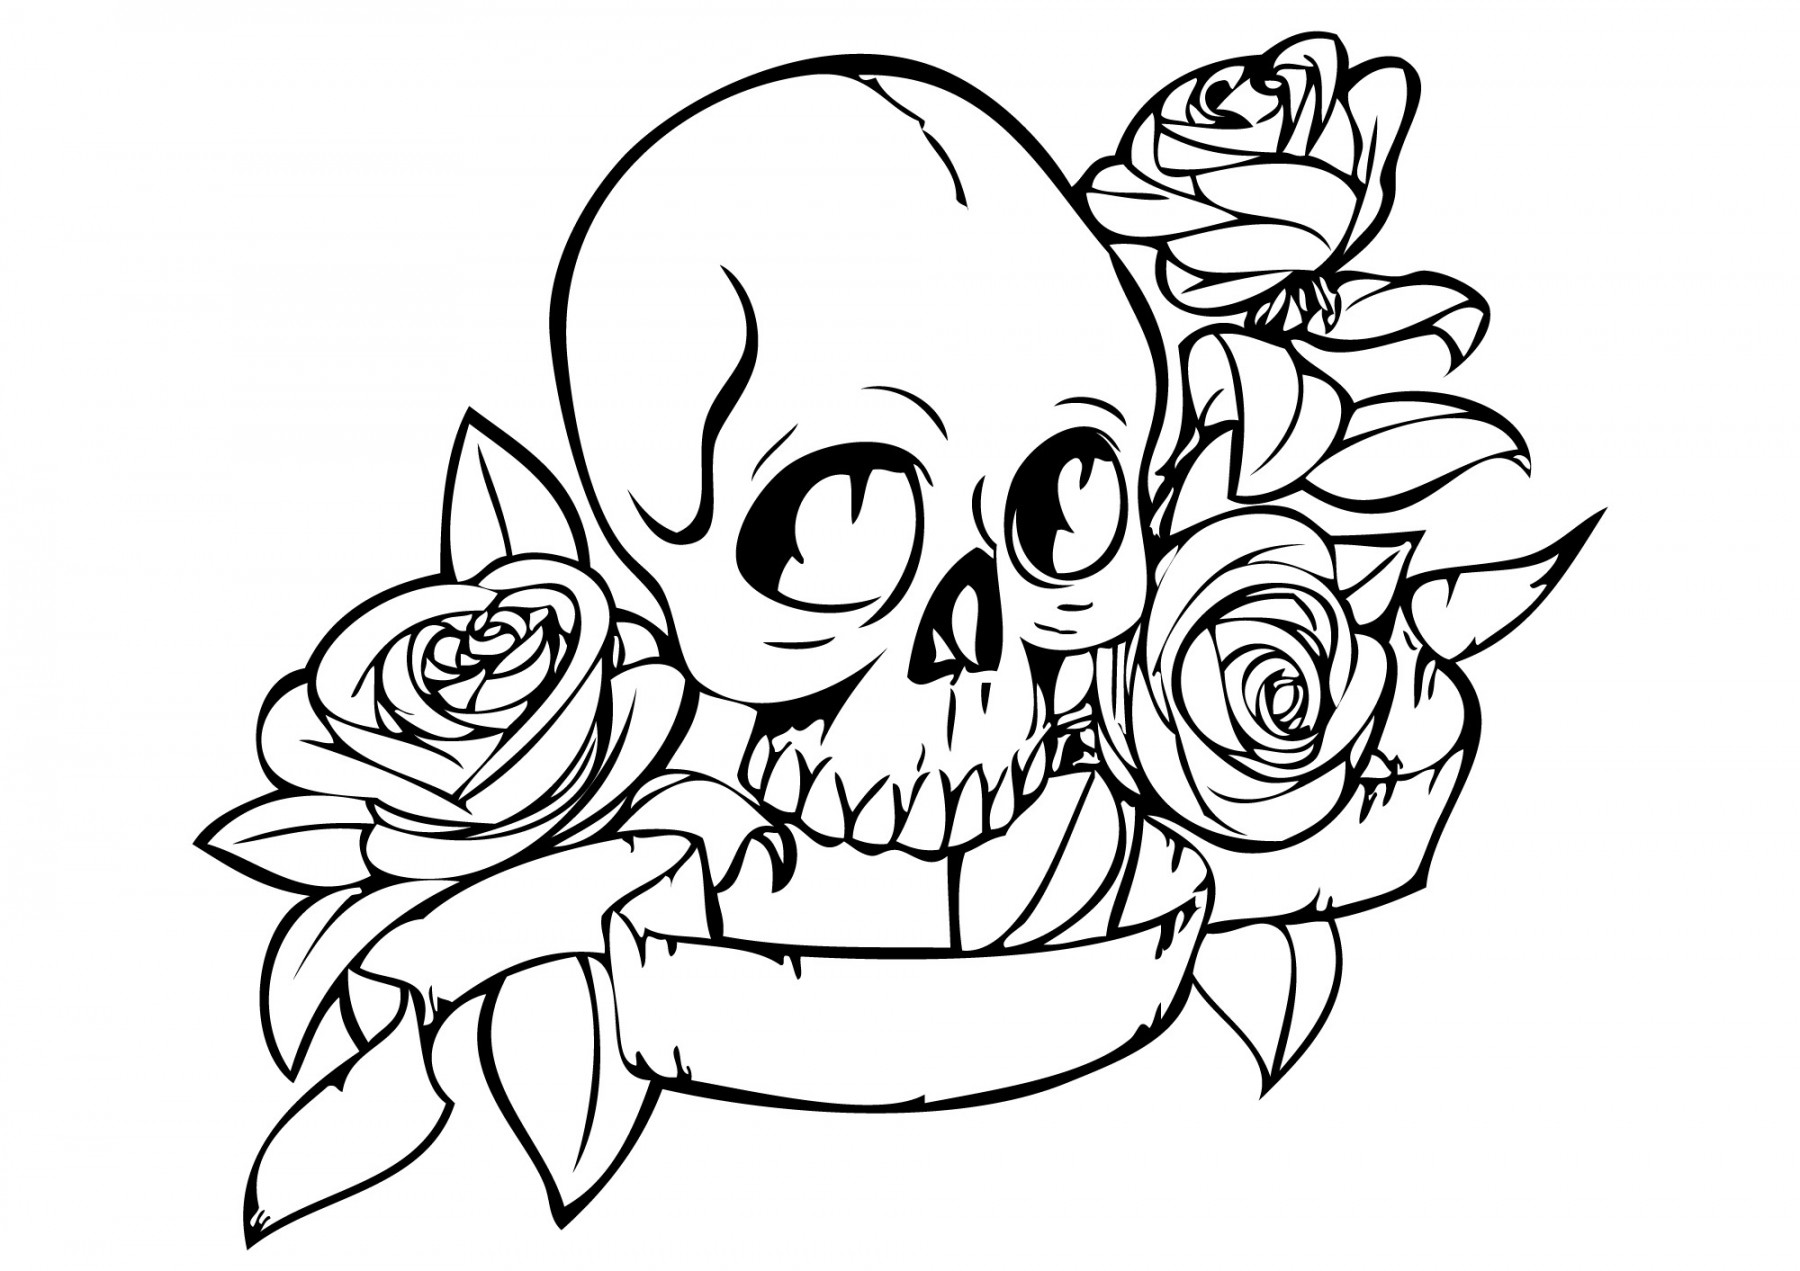 Skull And Rose Drawing Free Download Best Skull And Rose Drawing